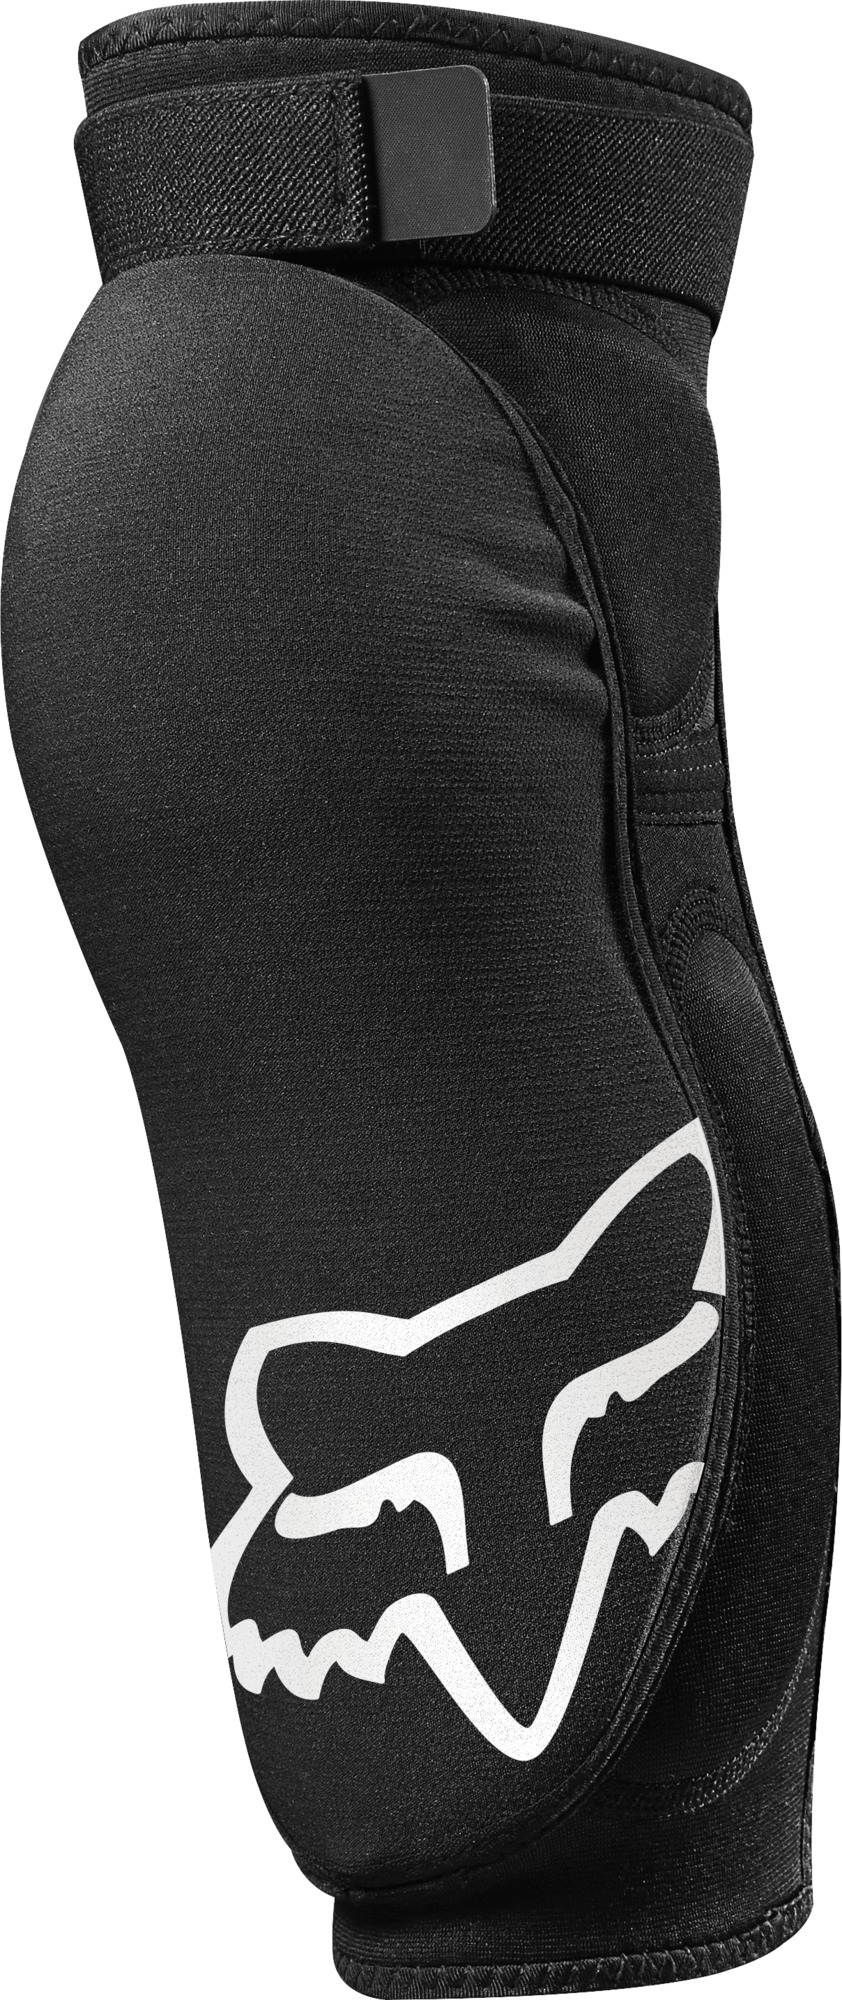 Fox Youth Launch D3o Elbow Guard Os Black